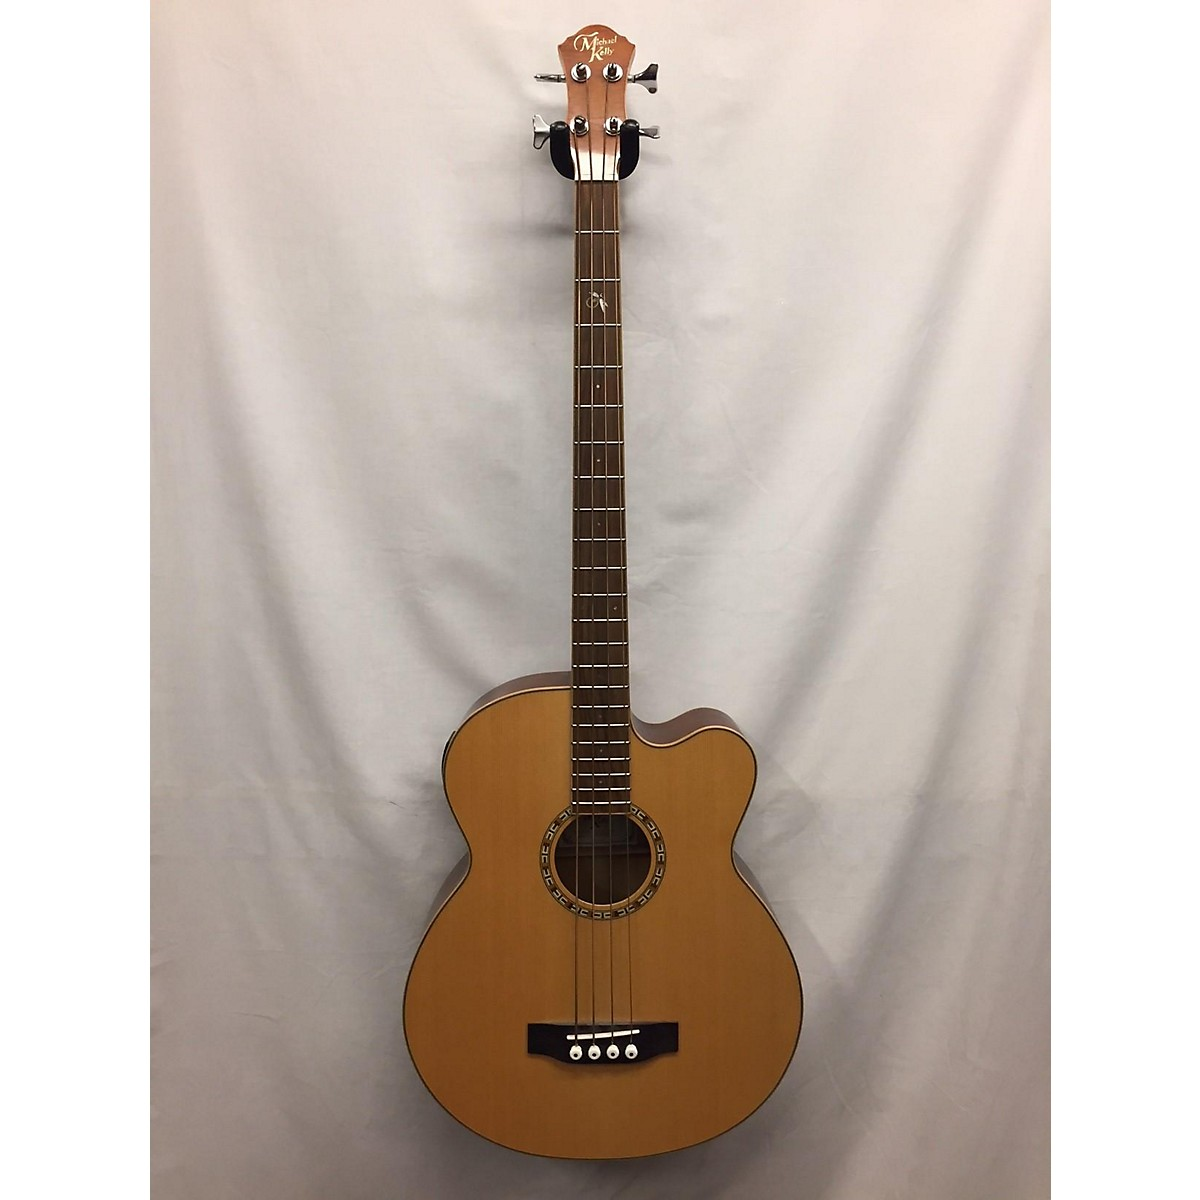 Michael Kelly Firefly 4NA Acoustic Bass Guitar